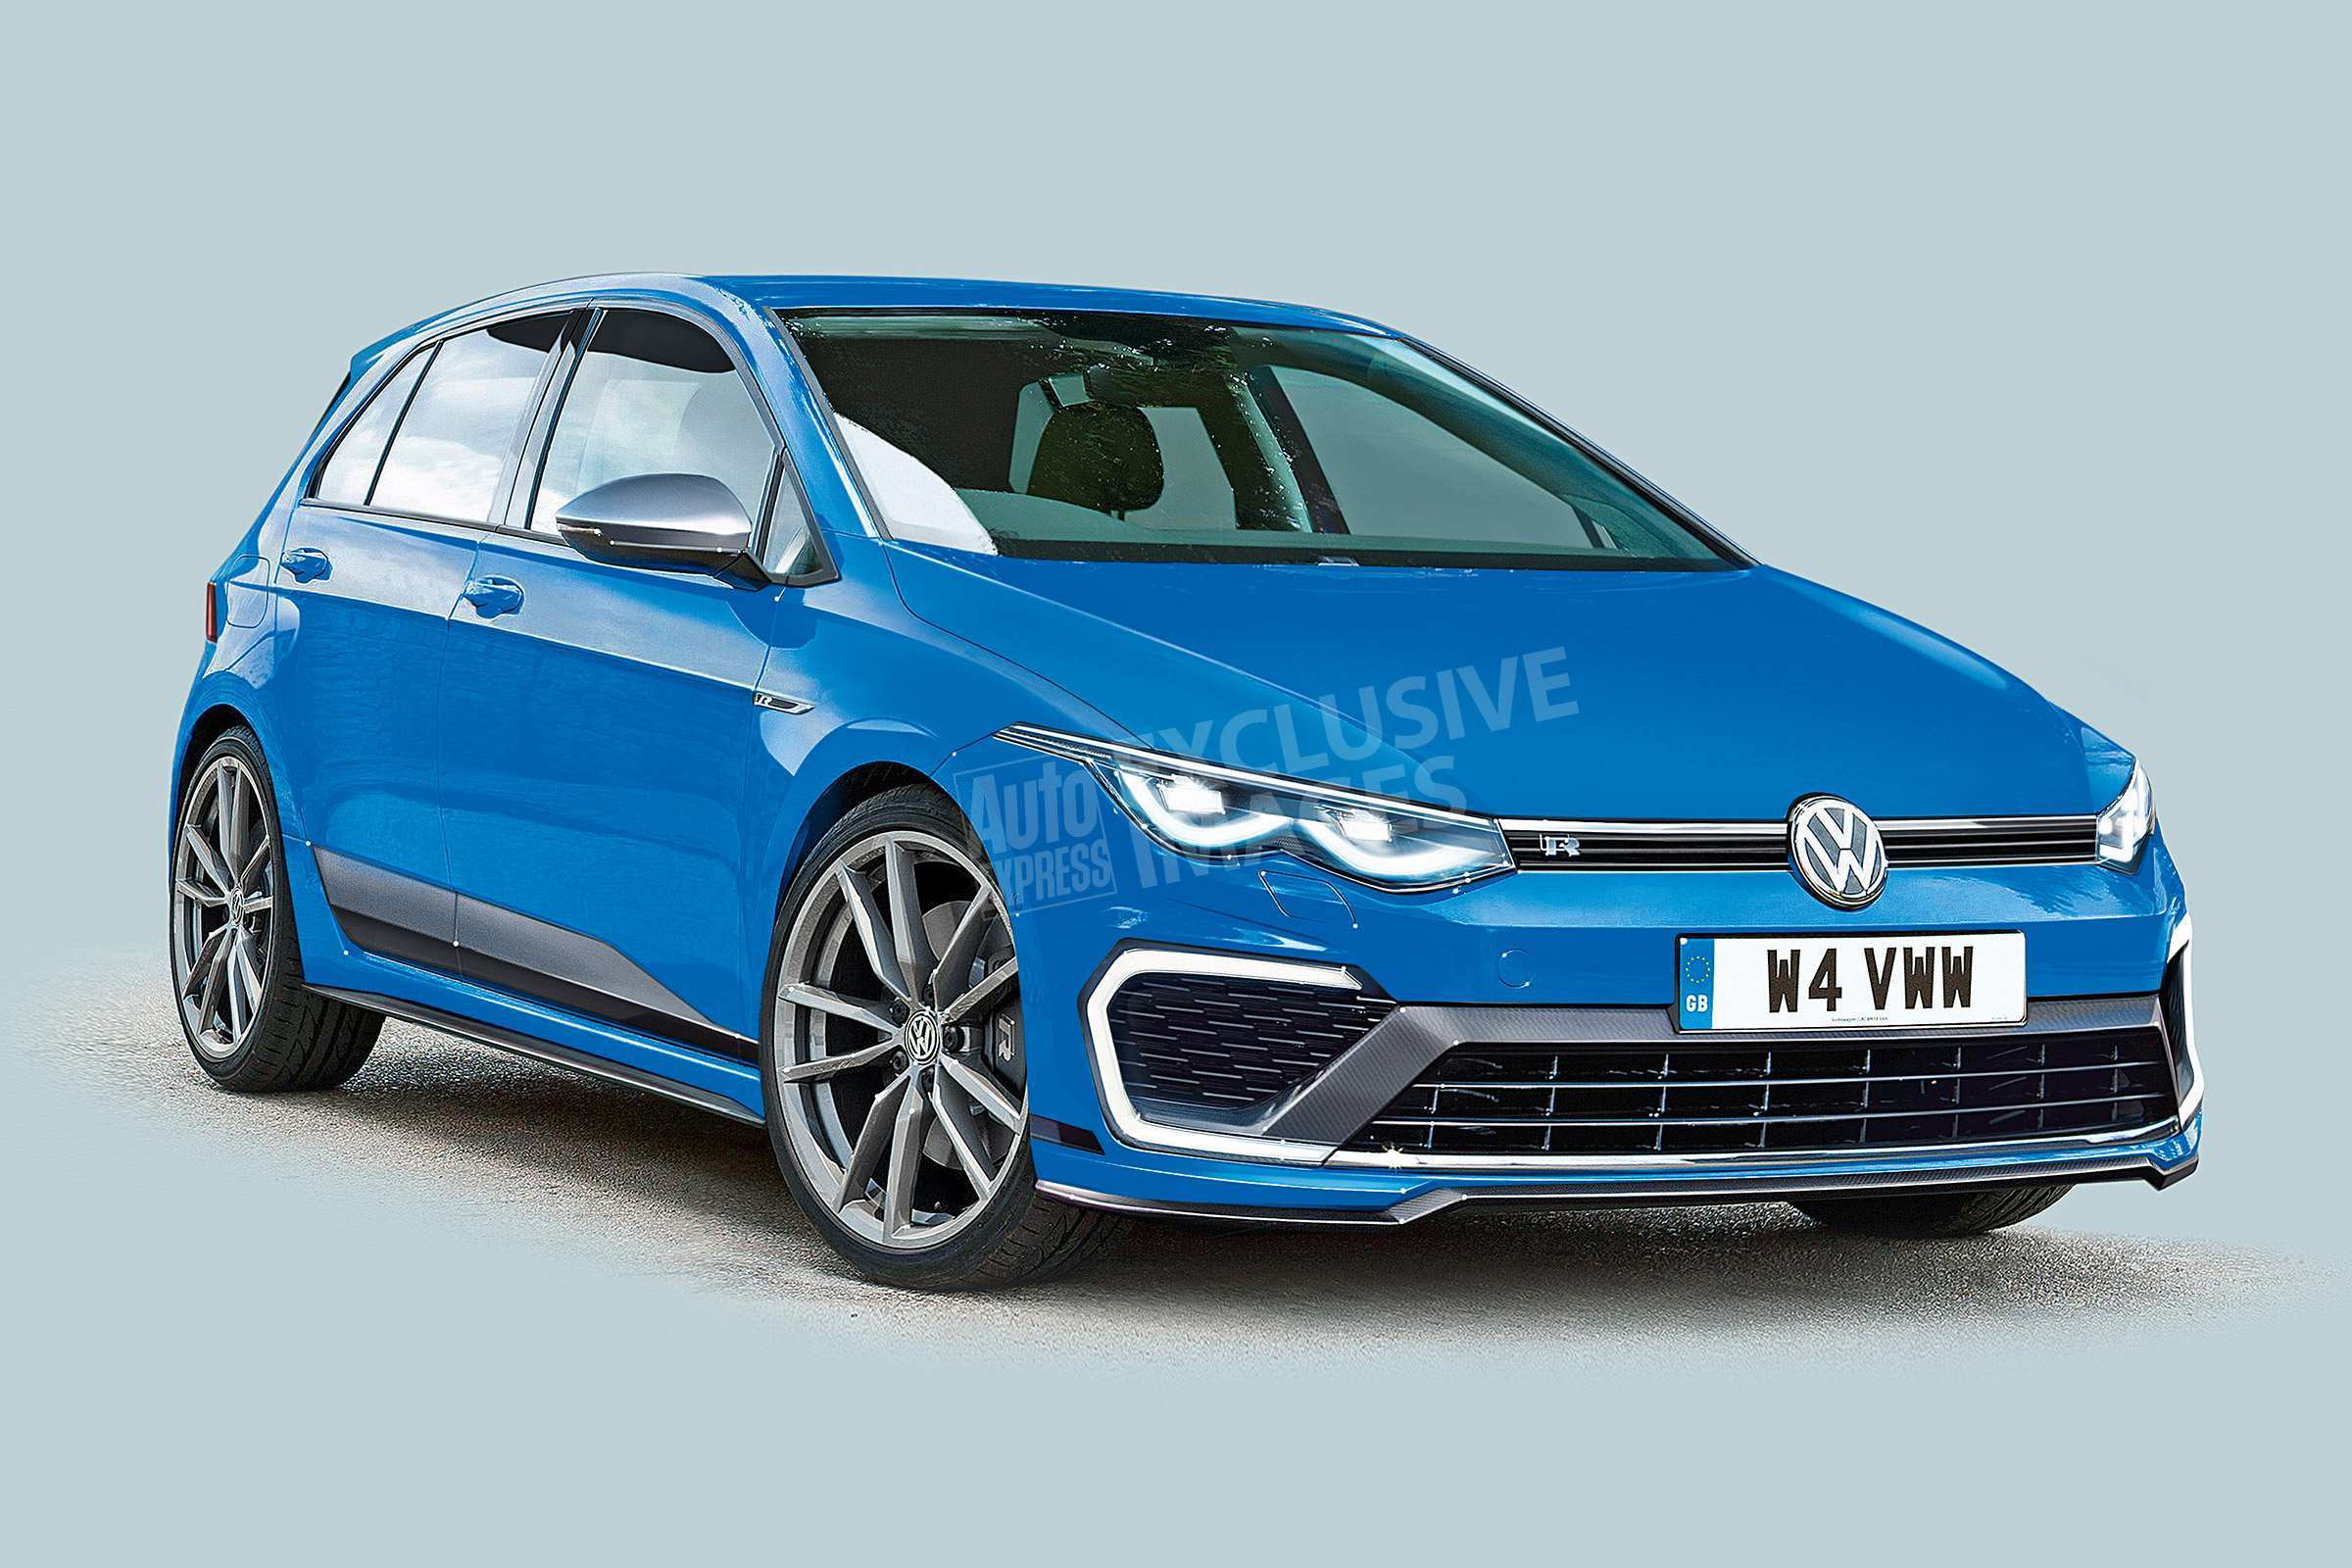 42 The Best Volkswagen Golf R 2020 Price